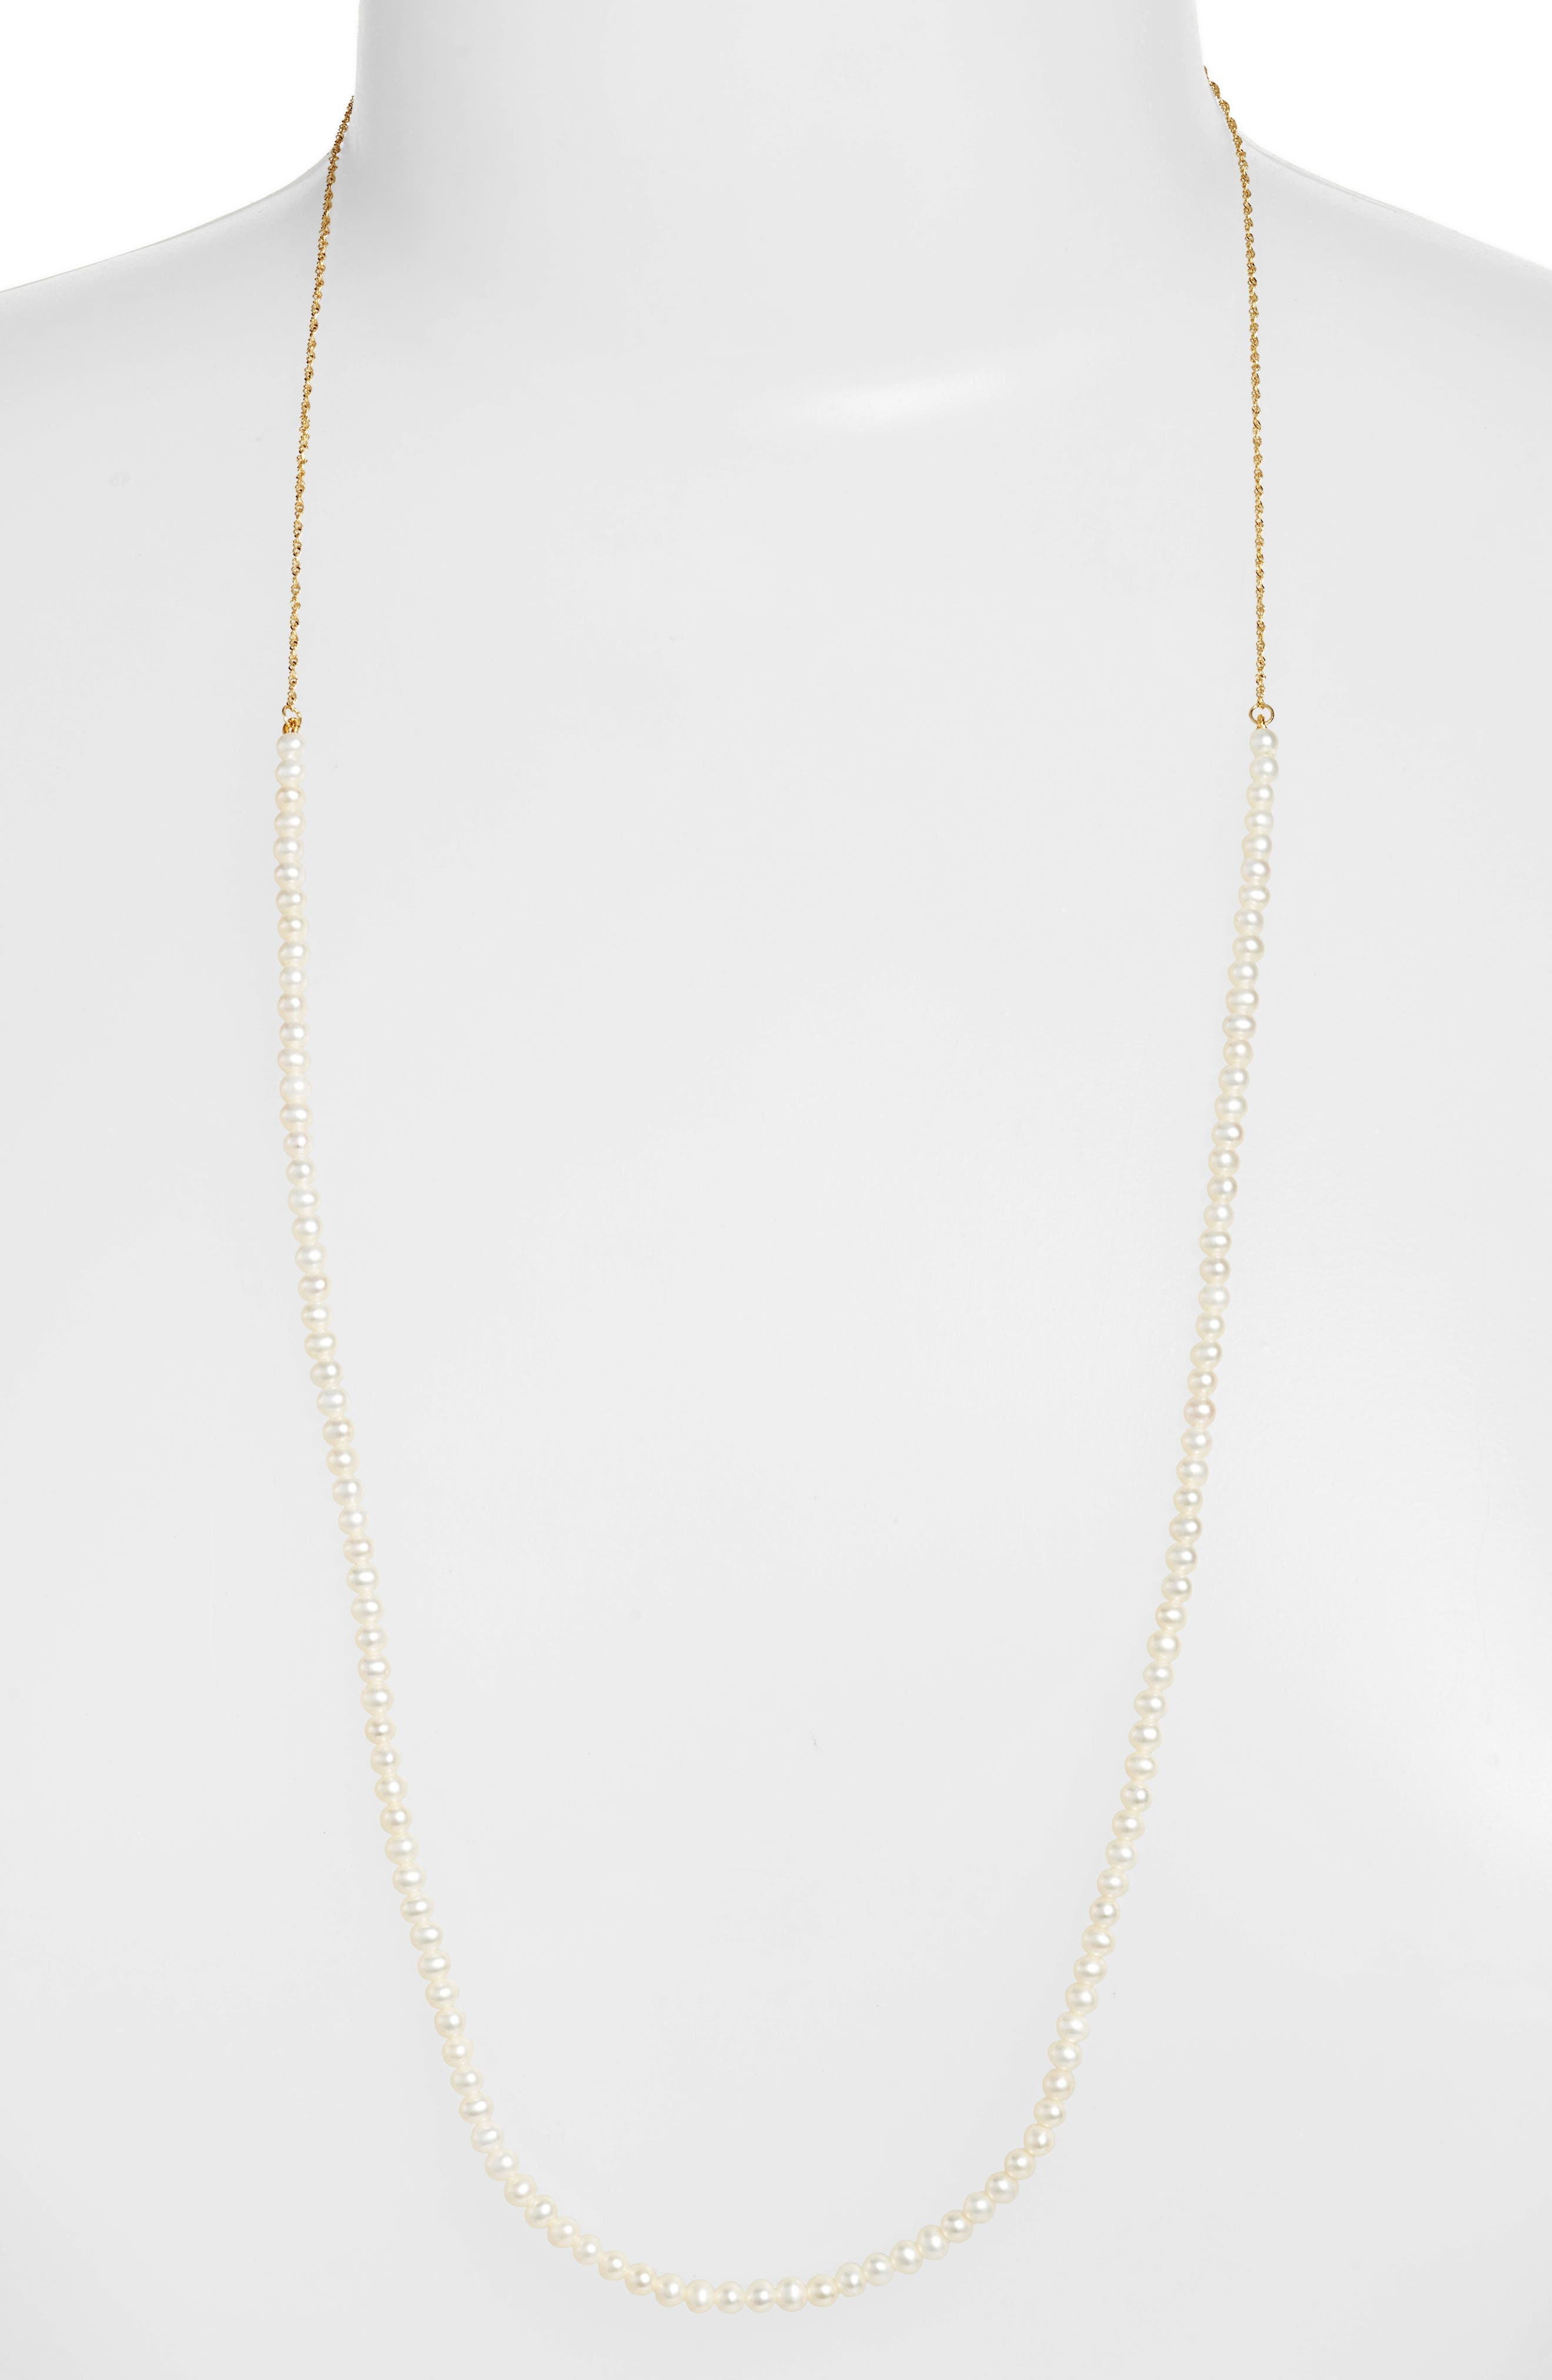 Poppy Finch Long Pearl Strand Necklace